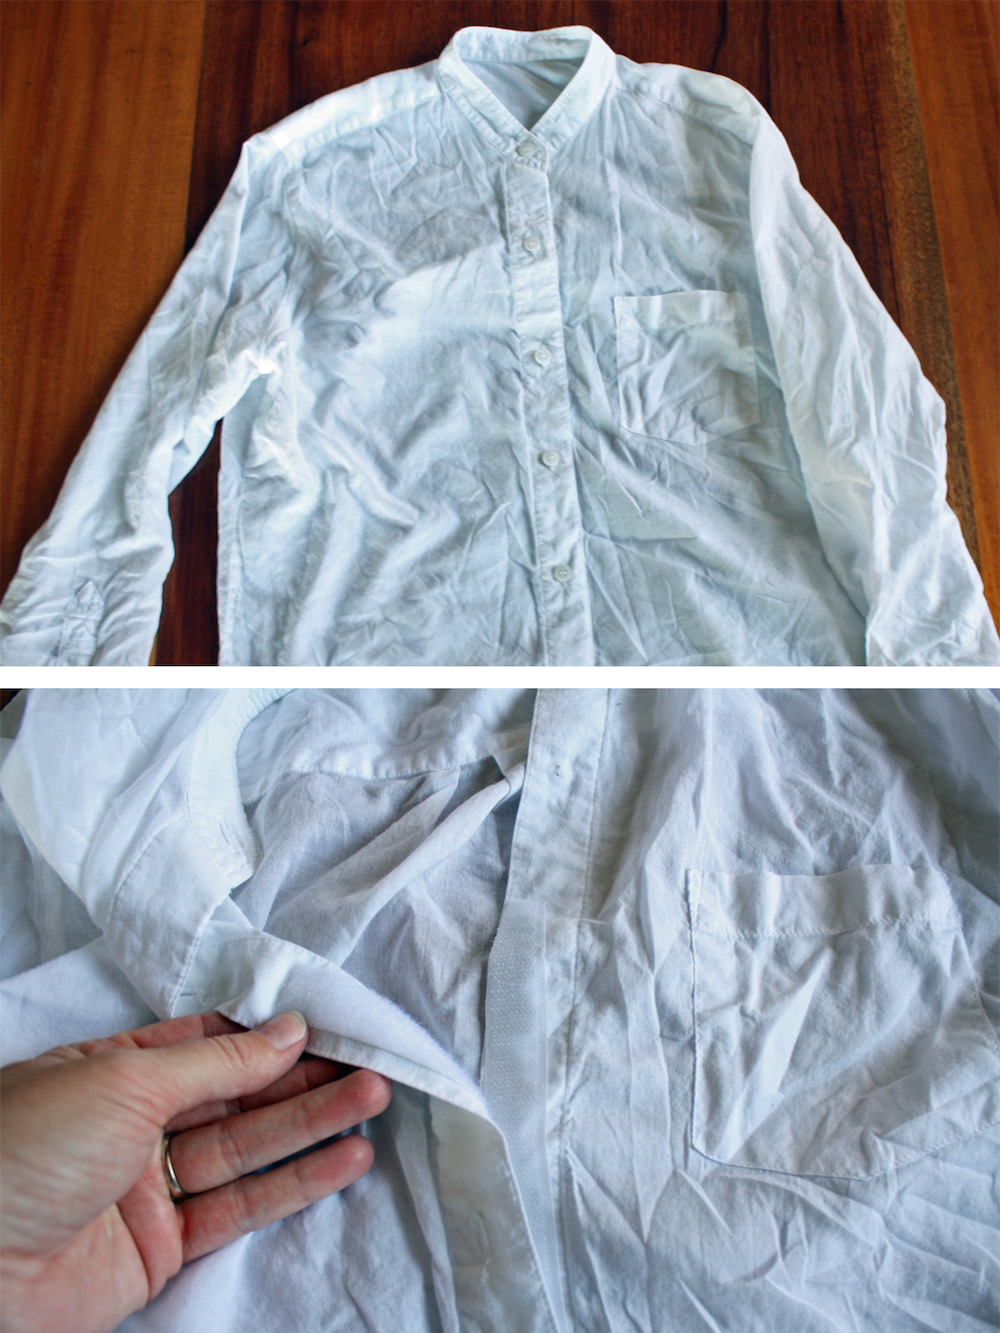 How to make a BFG shirt